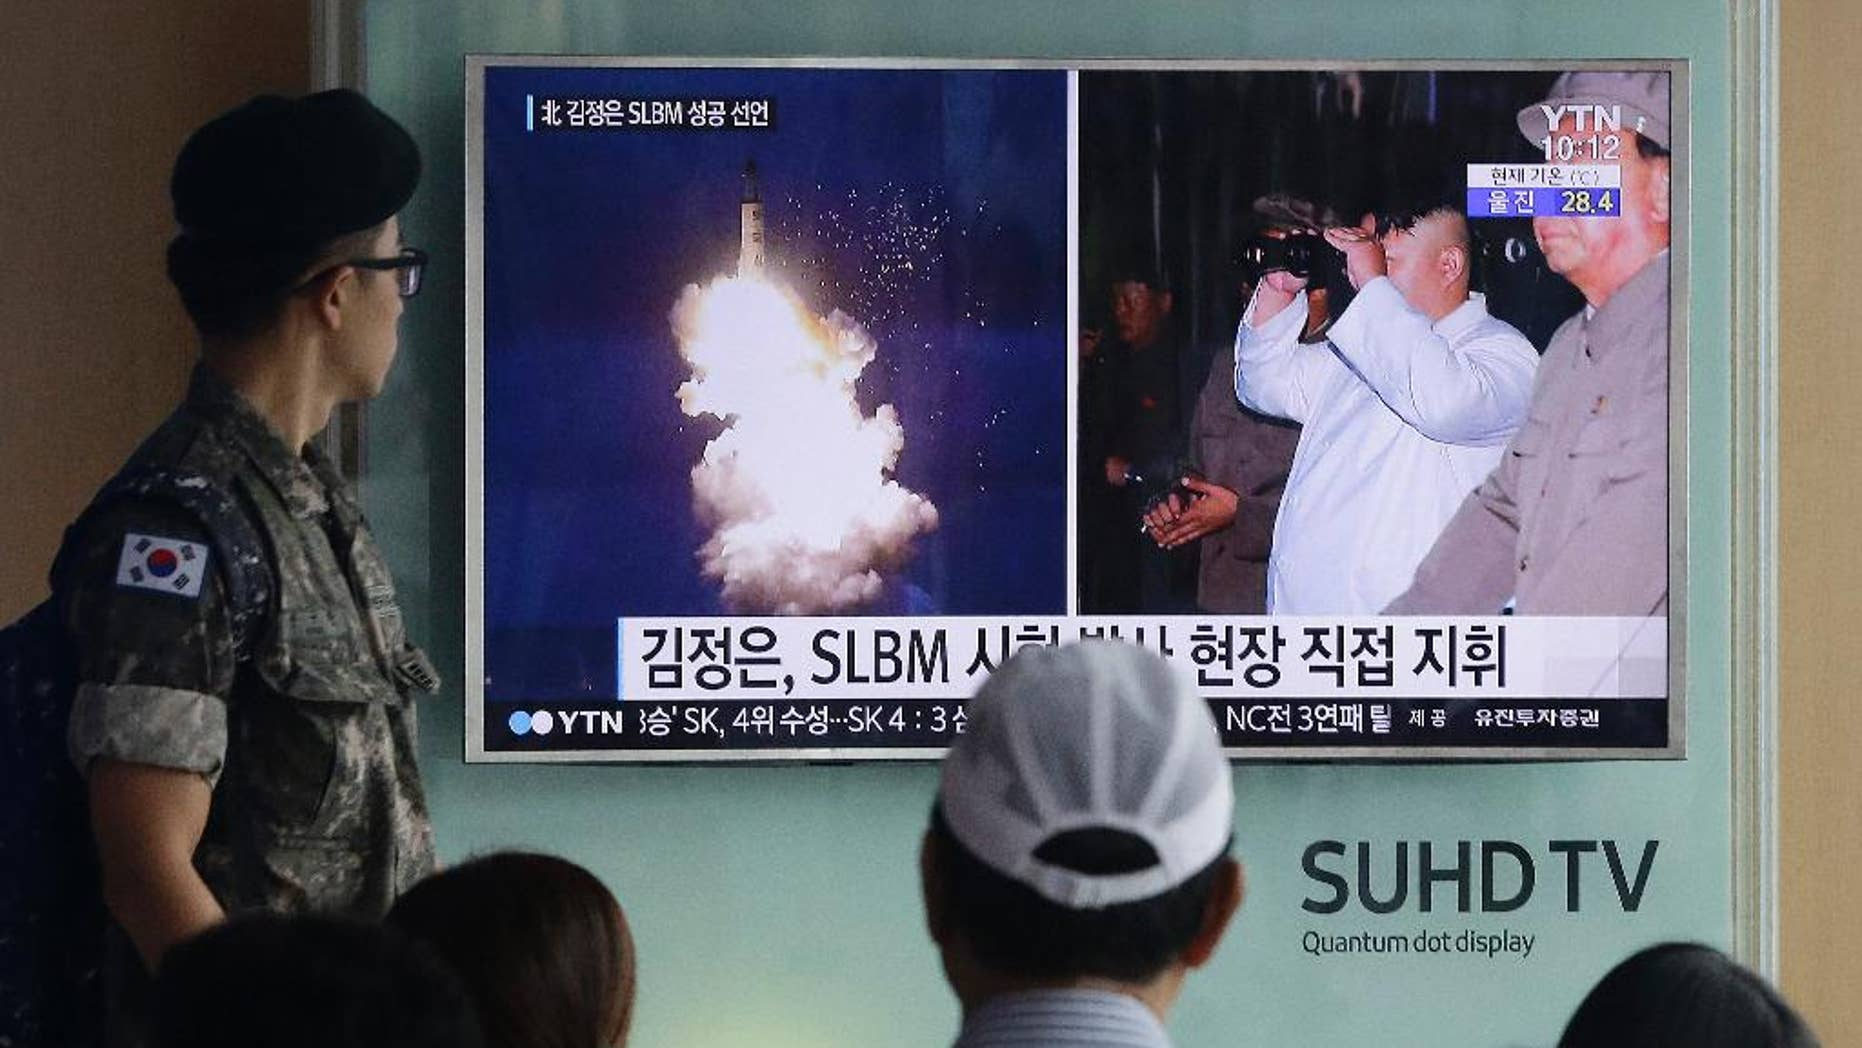 """FILE - In this Thursday, Aug. 25, 2016, file photo, a South Korean army soldier watches a TV news program showing images published in North Korea's Rodong Sinmun newspaper of North Korea's ballistic missile believed to have been launched from underwater and North Korean leader Kim Jong-un, at Seoul Railway station in Seoul, South Korea. The UN Security Council is strongly condemning four North Korean ballistic missile launches in July and August, calling them """"grave violations"""" of a ban on all ballistic missile activity. A press statement approved by all 15 members Friday night deplored the fact that the North's ballistic missile activities are contributing to its development of nuclear weapon delivery systems and increasing tensions. (AP Photo/Ahn Young-joon, File)"""